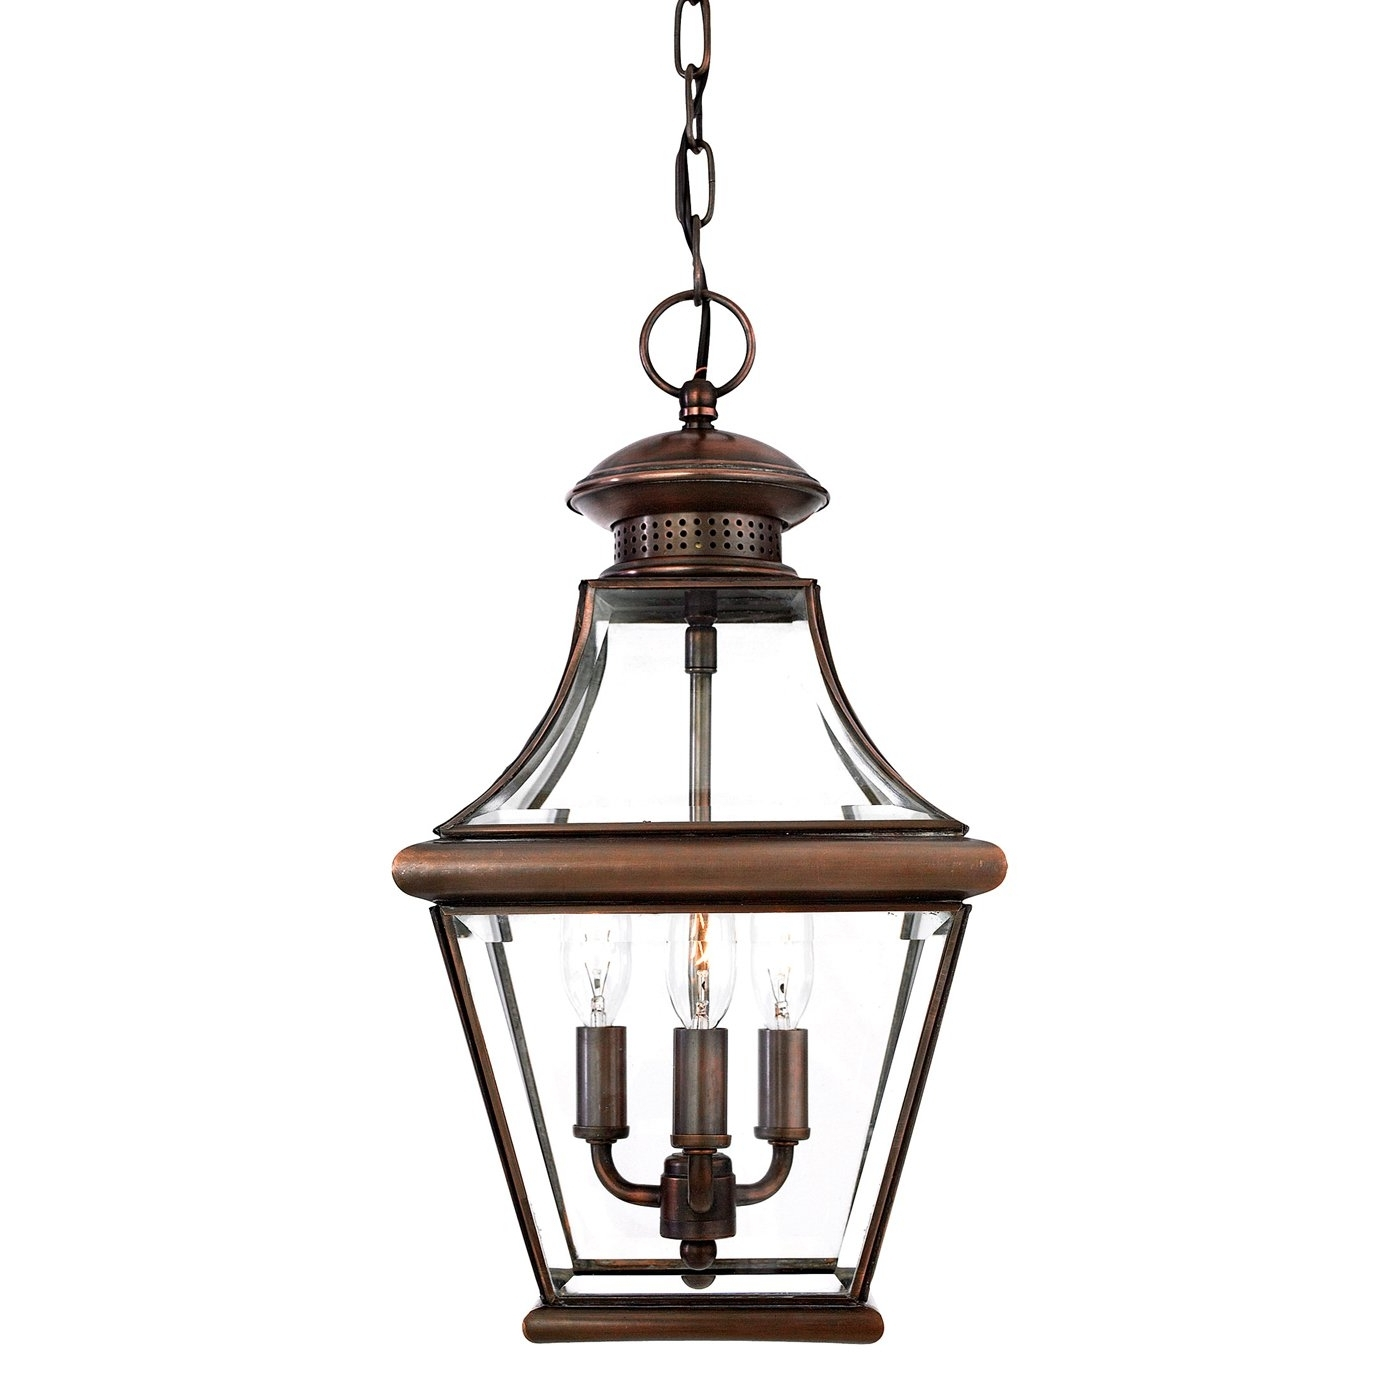 Designer Outdoor Pendant Light Fixtures Home Depot: 15 Outstanding Intended For Fashionable Outdoor Hanging Lights At Home Depot (View 3 of 20)